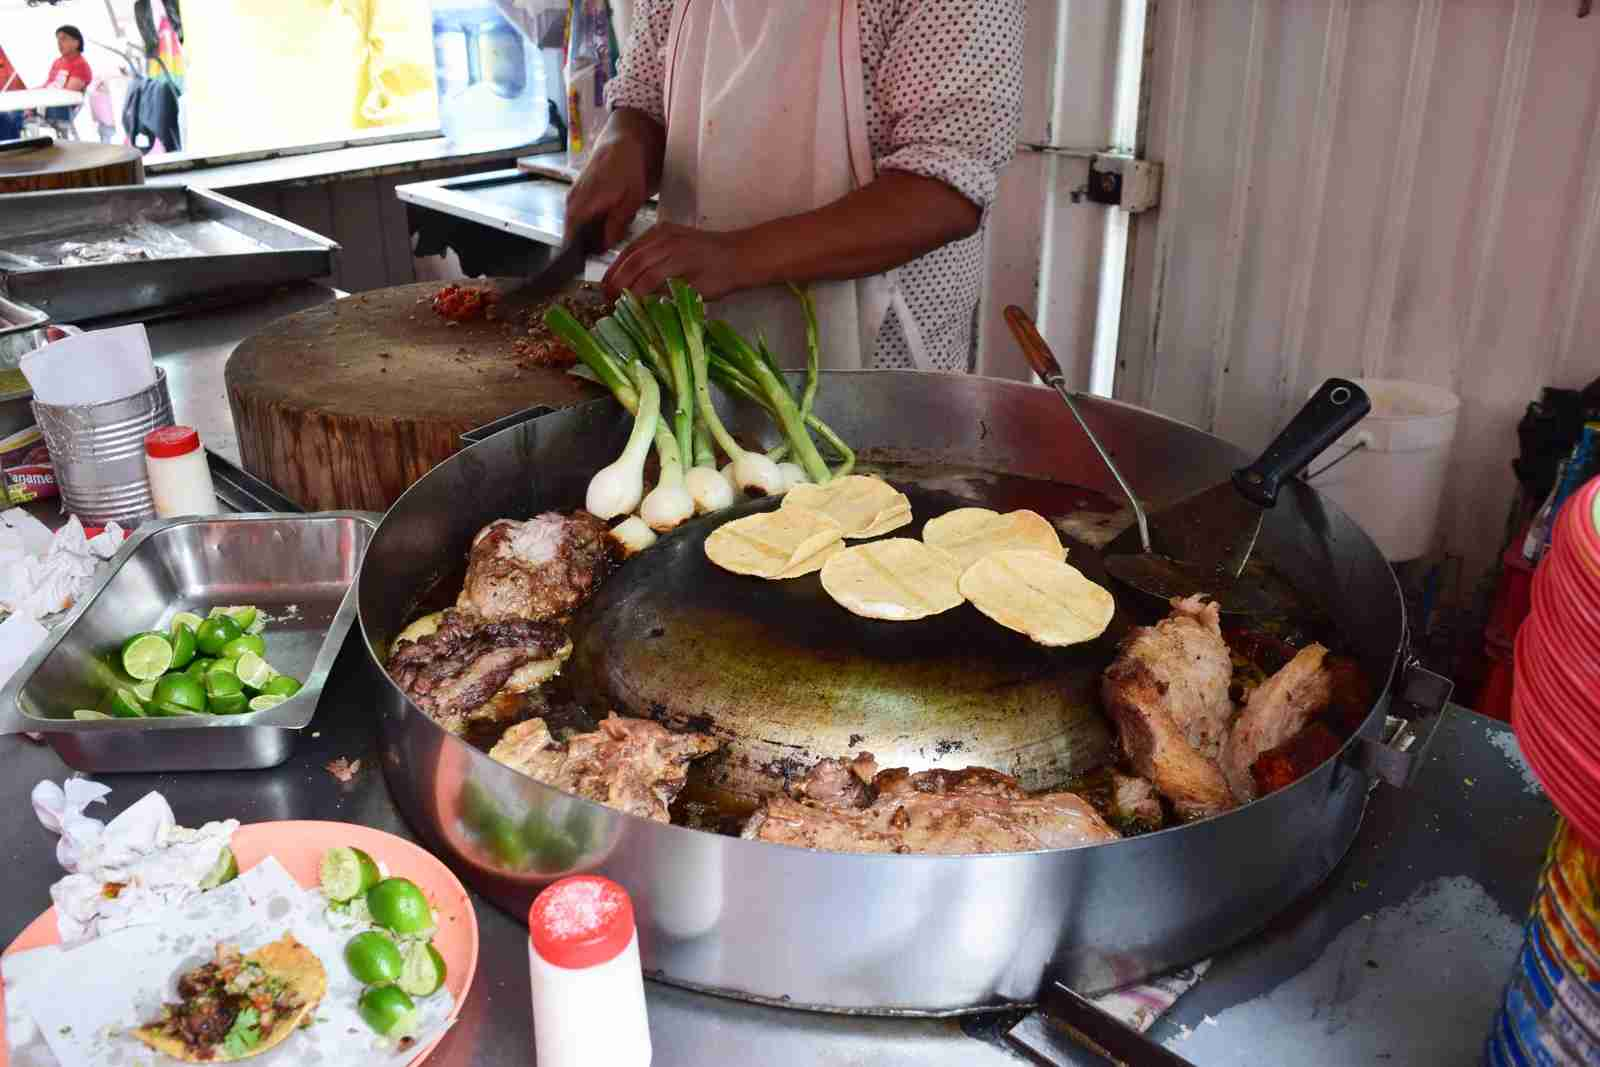 Street tacos in Mexico are unlike any other (and much cheaper). (Photo via Shutterstock)